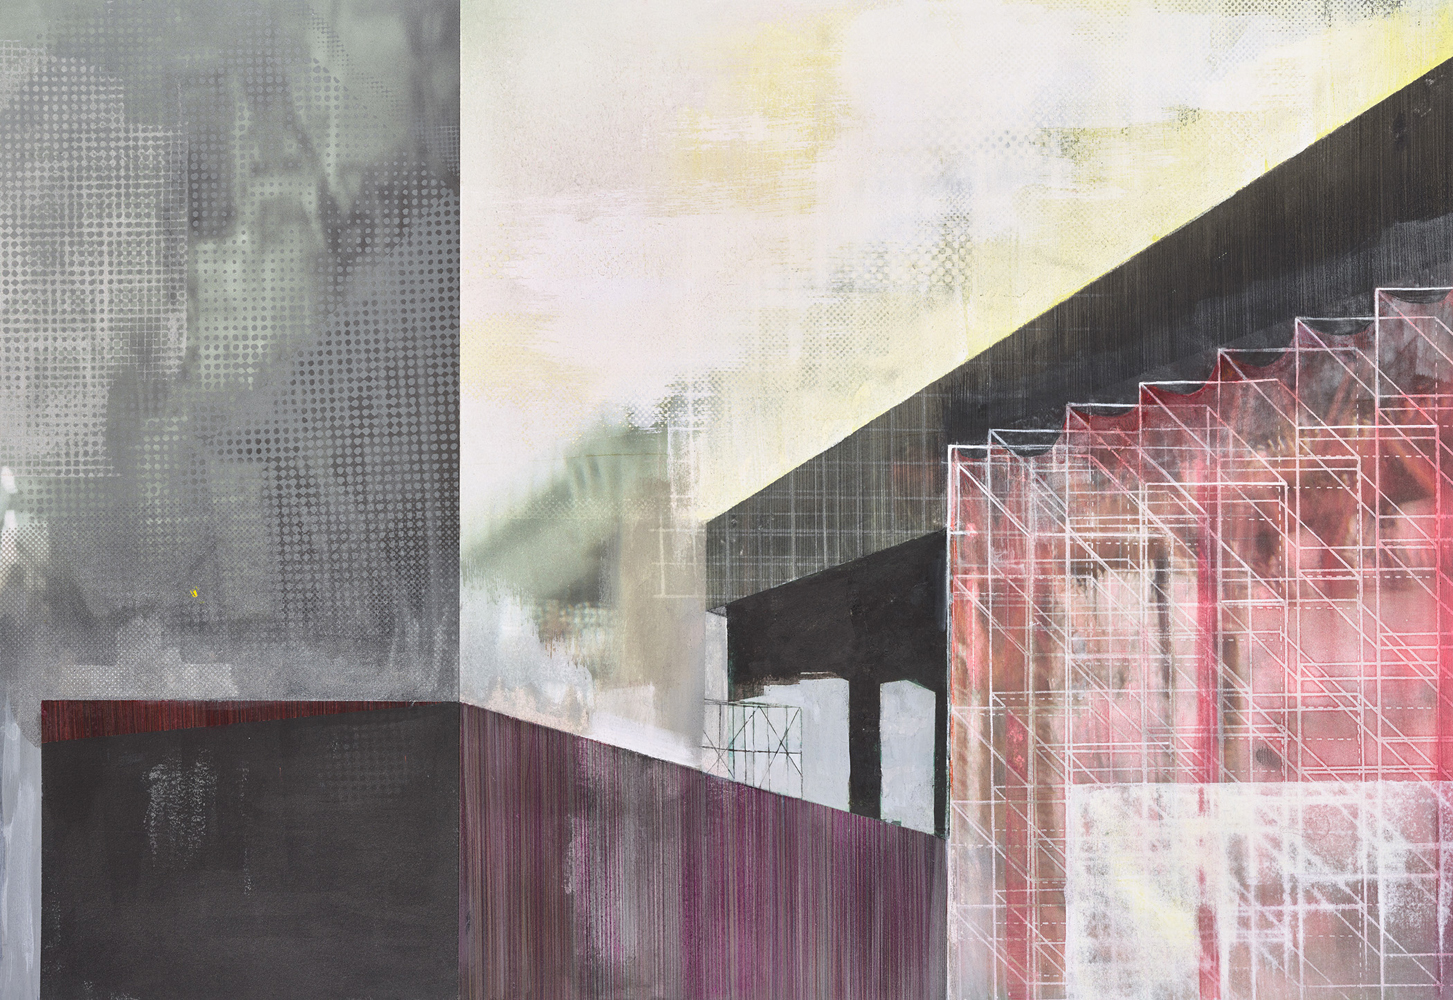 Amanda Knowles, Extension II, 2020, screen print, graphite, acrylic on paper, 20 x 29 inches, $2200.